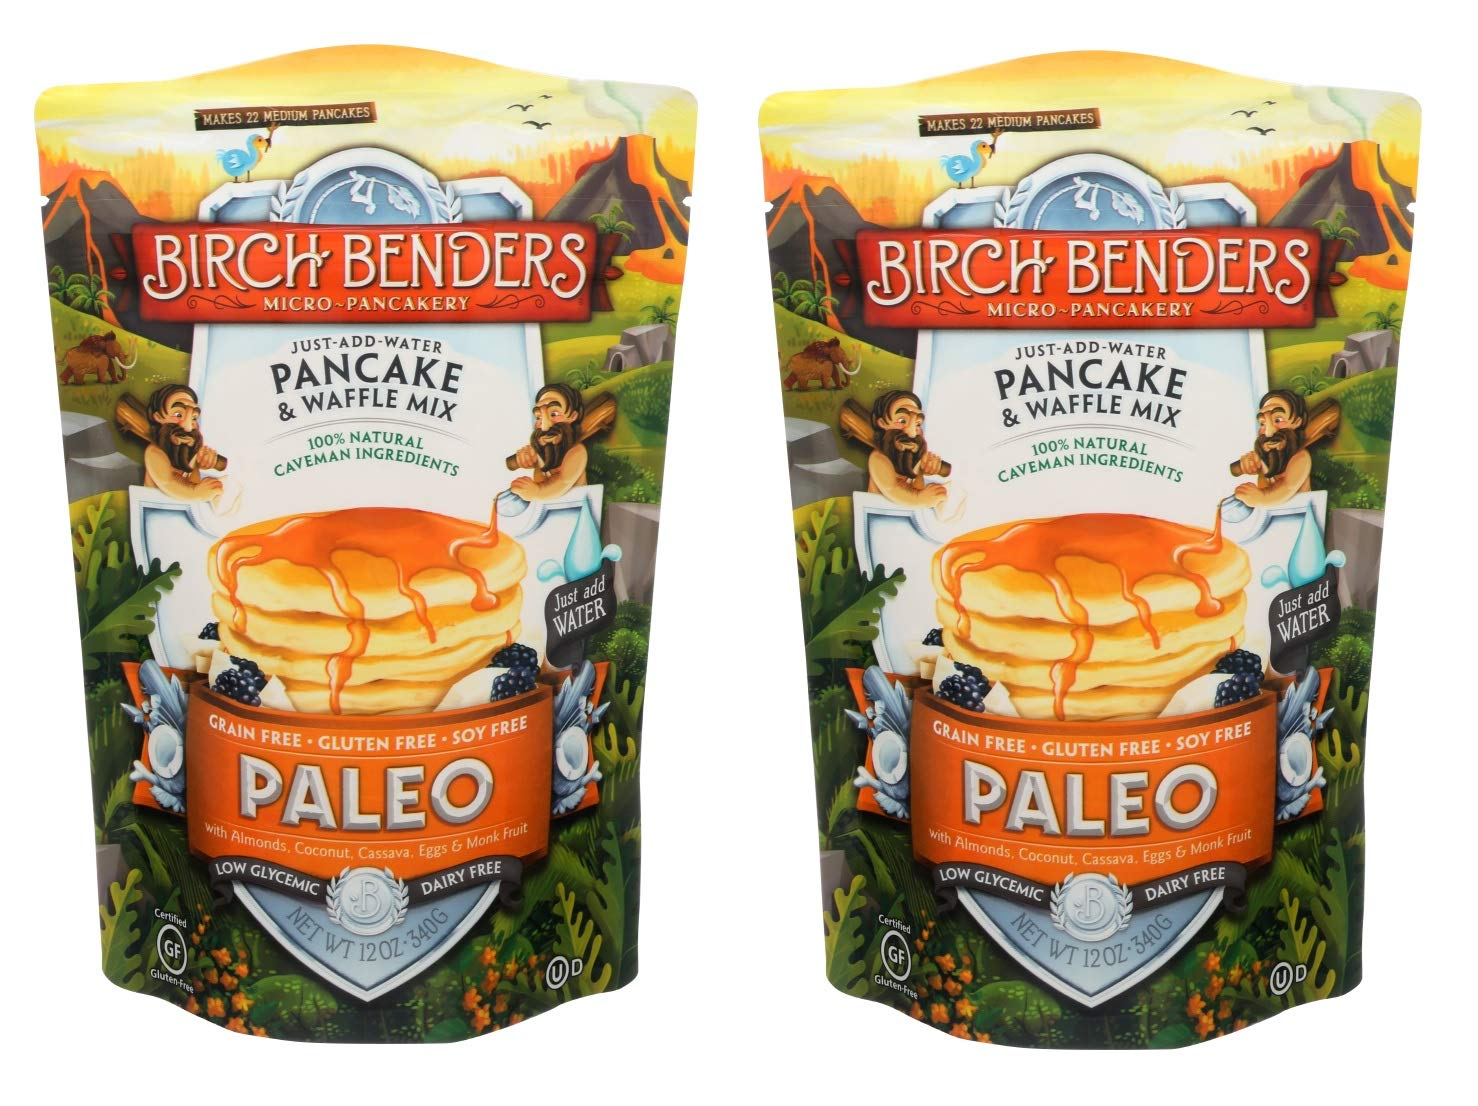 Birch Benders Keto Pancake Mix